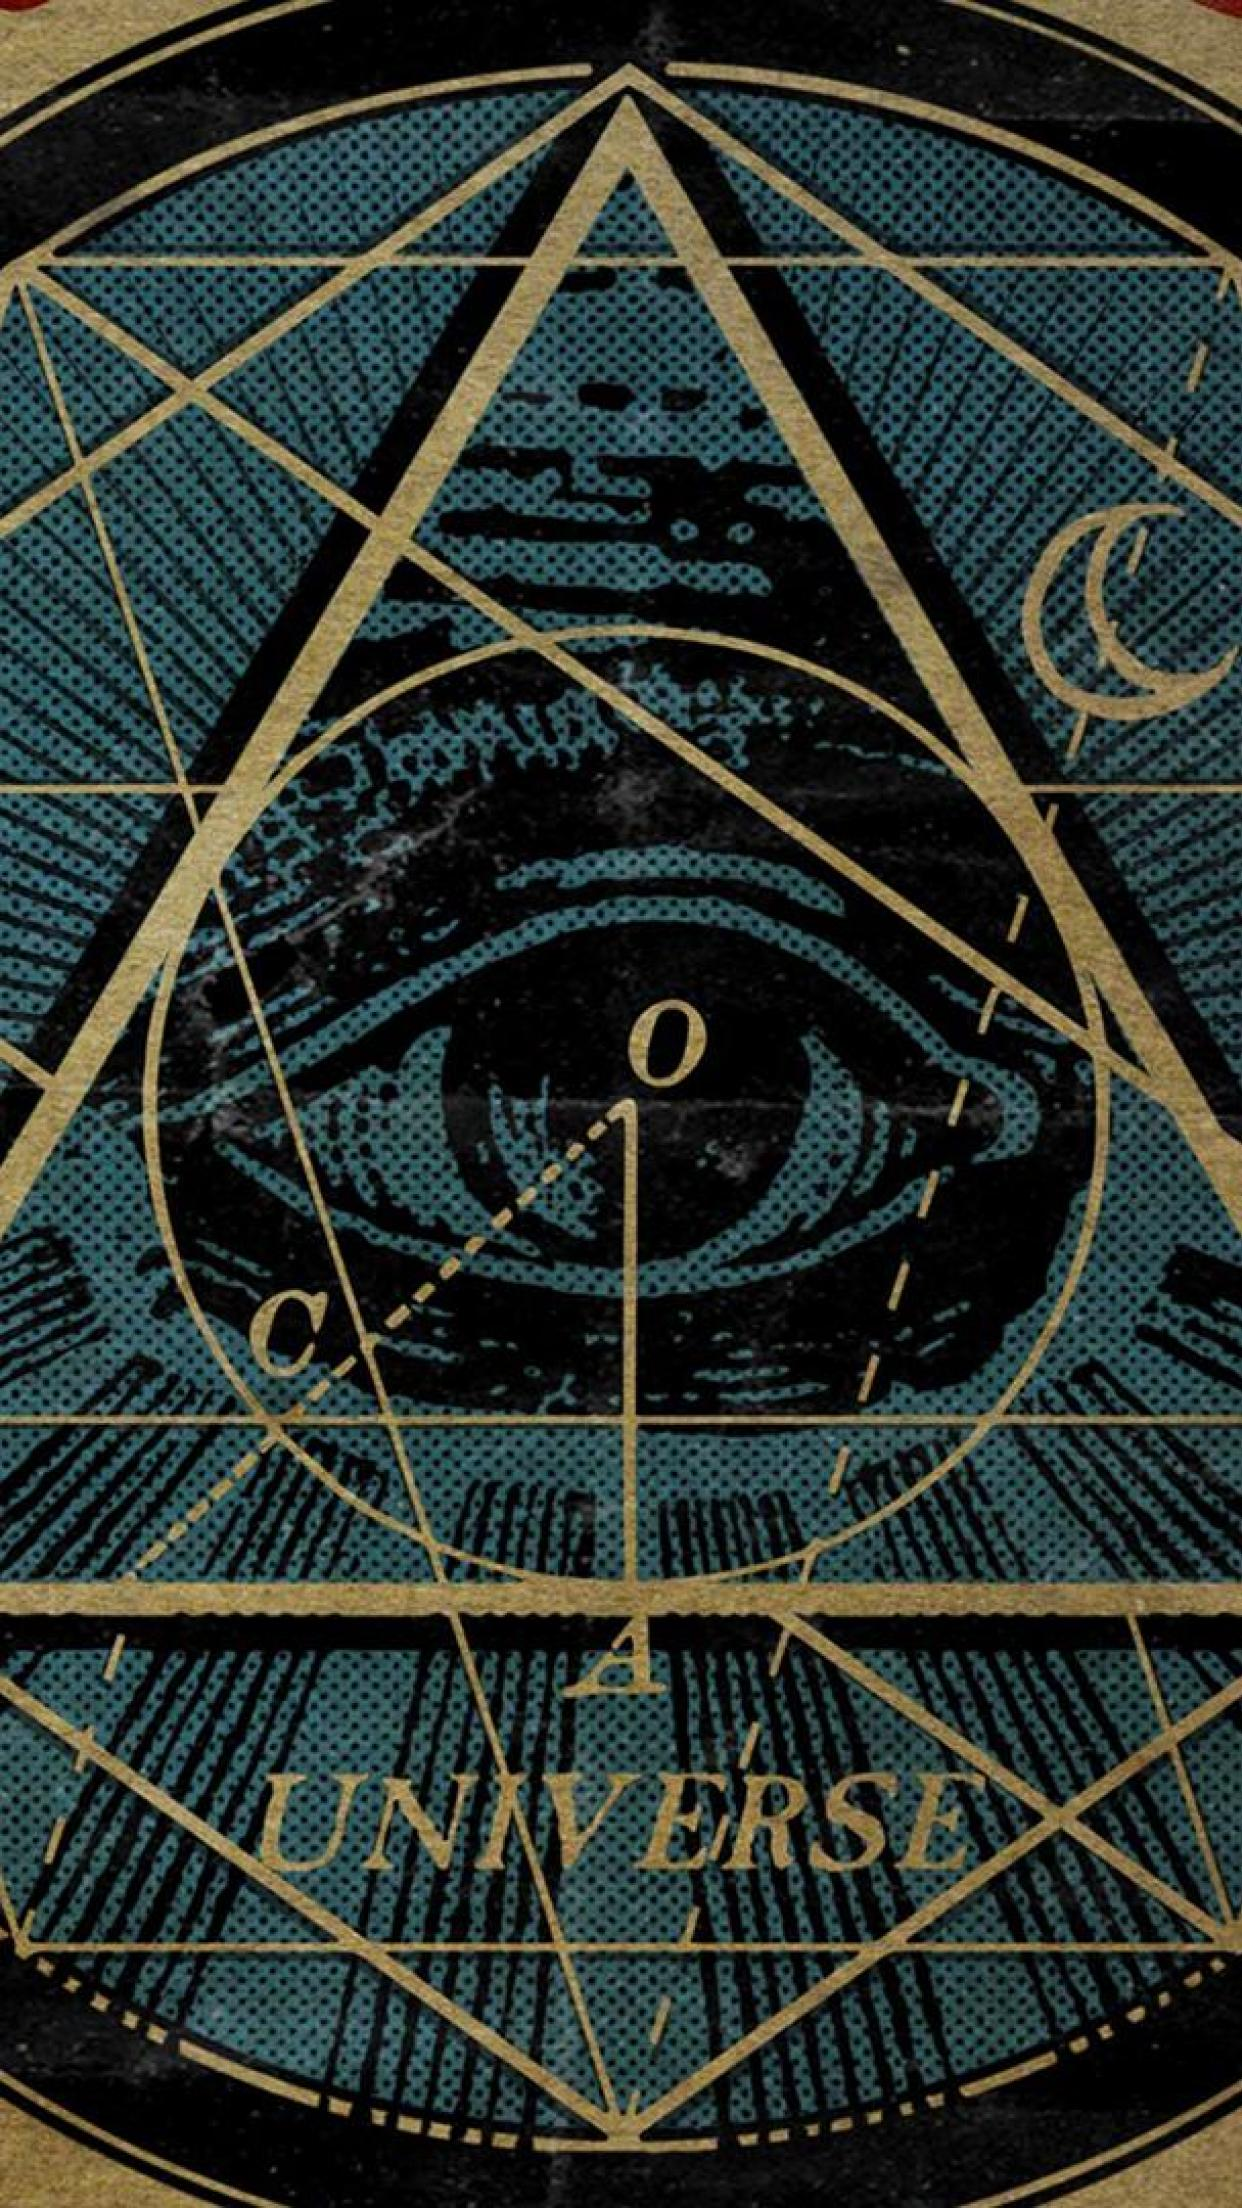 Gravity Falls Wallpaper Celular Hd Illuminati Control All Wallpaper For Iphone X 8 7 6